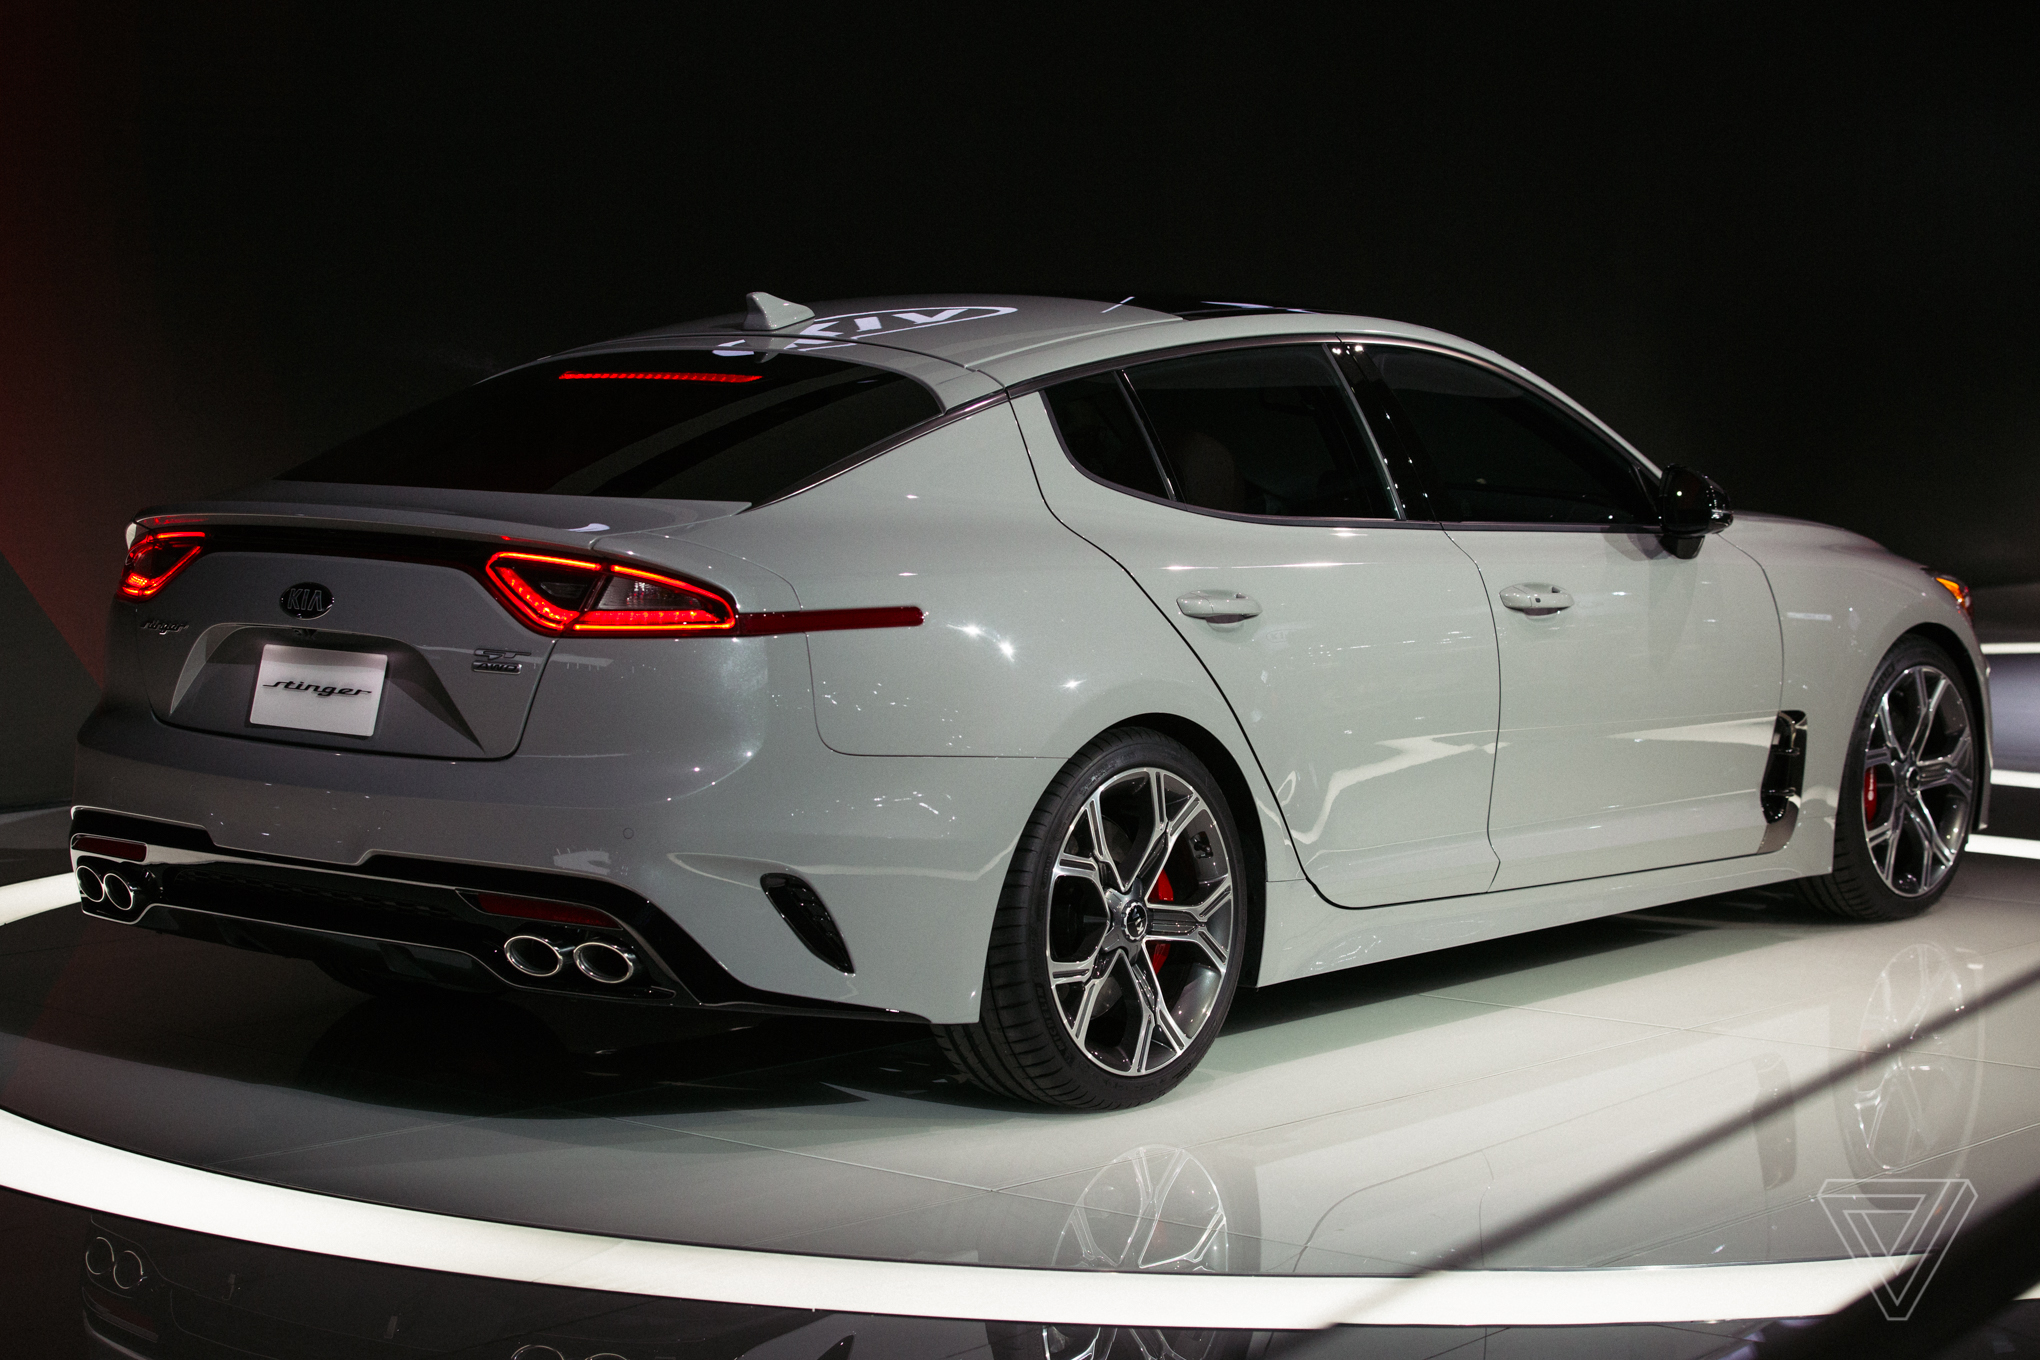 Going Crazy The Kia Stinger Is A Sports Sedan That Sizzles In A Sea Of